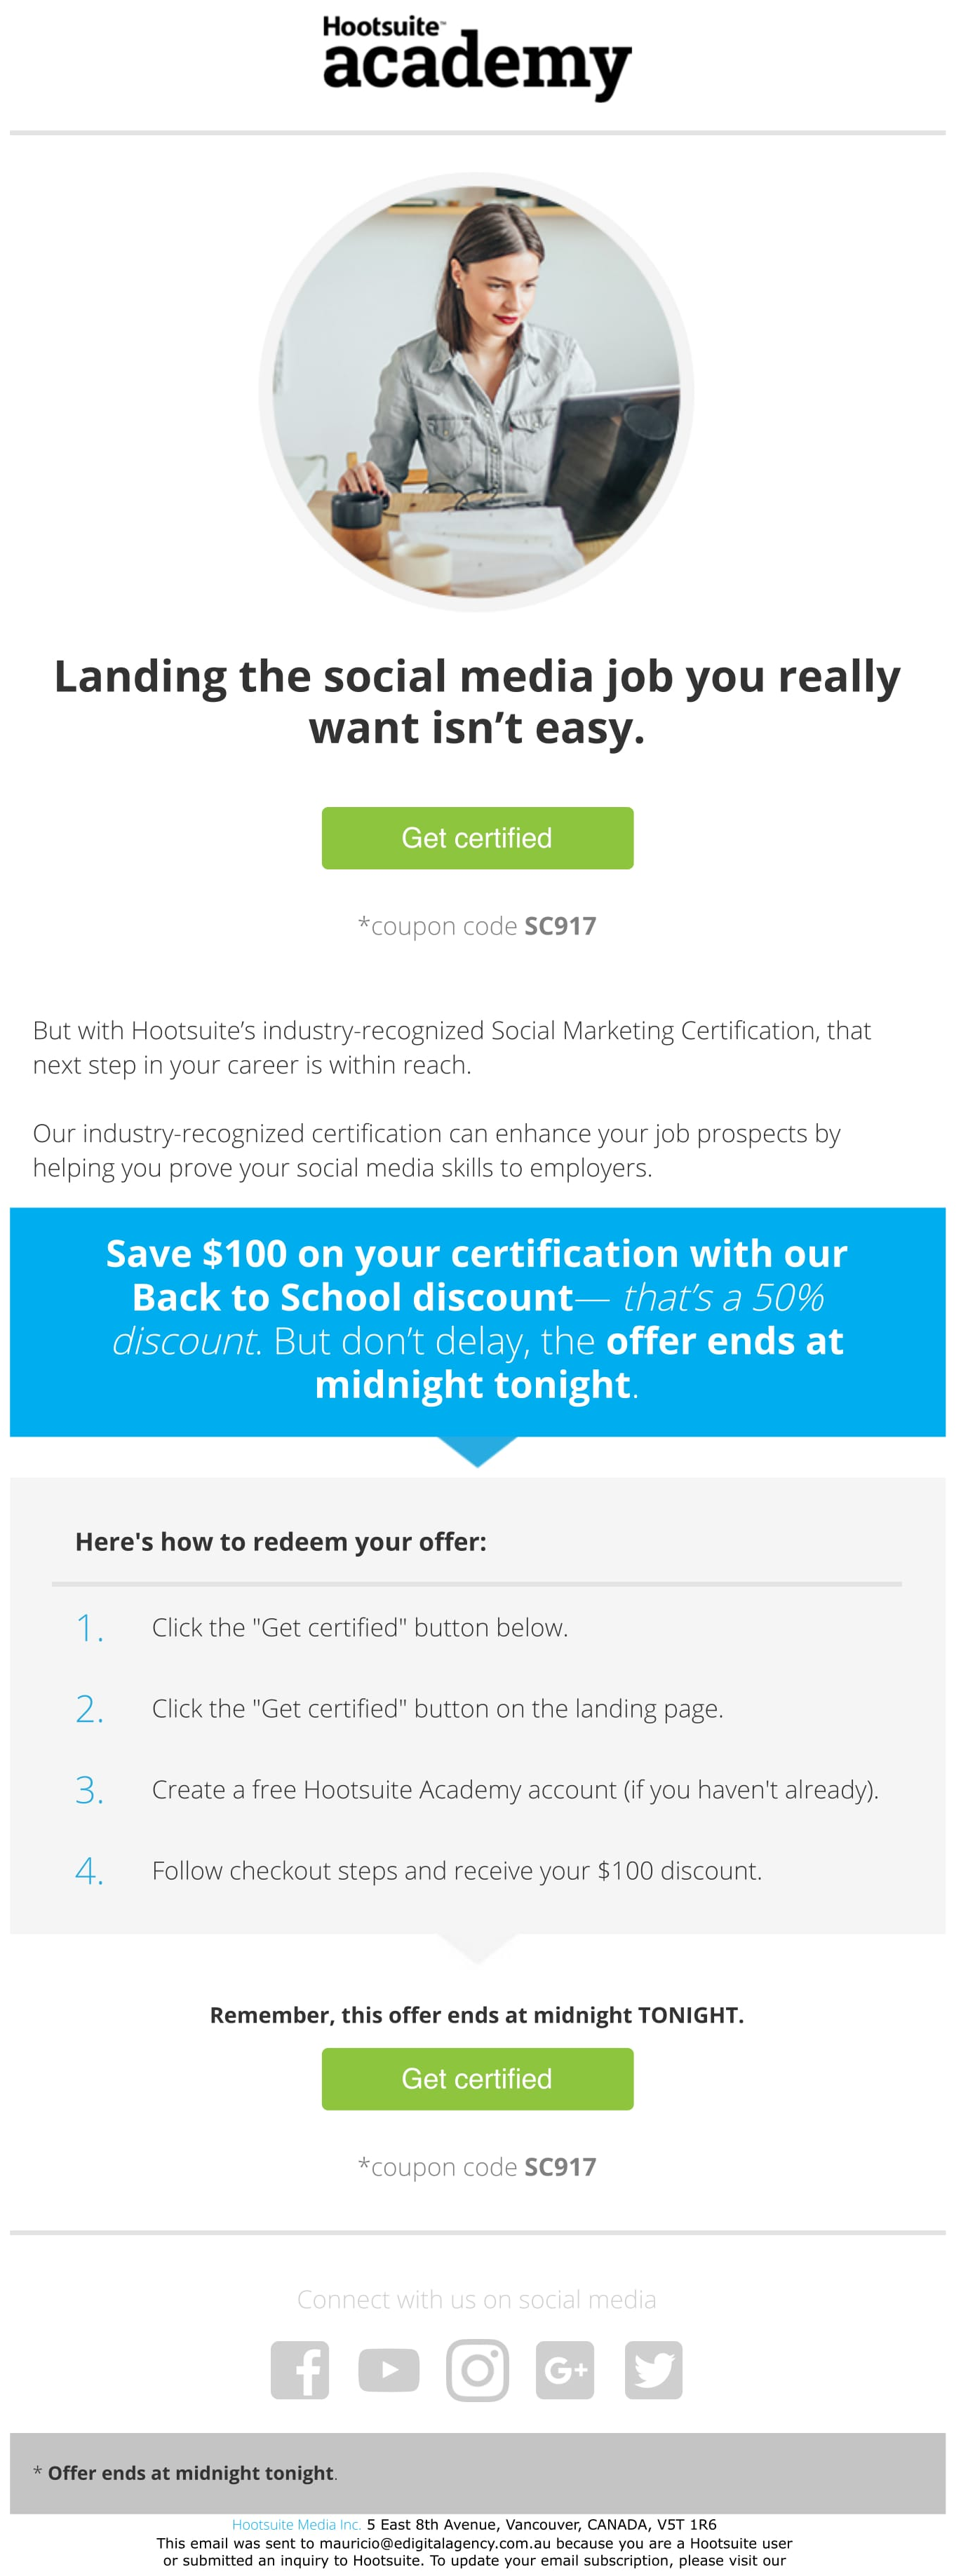 Oracle certification coupon code